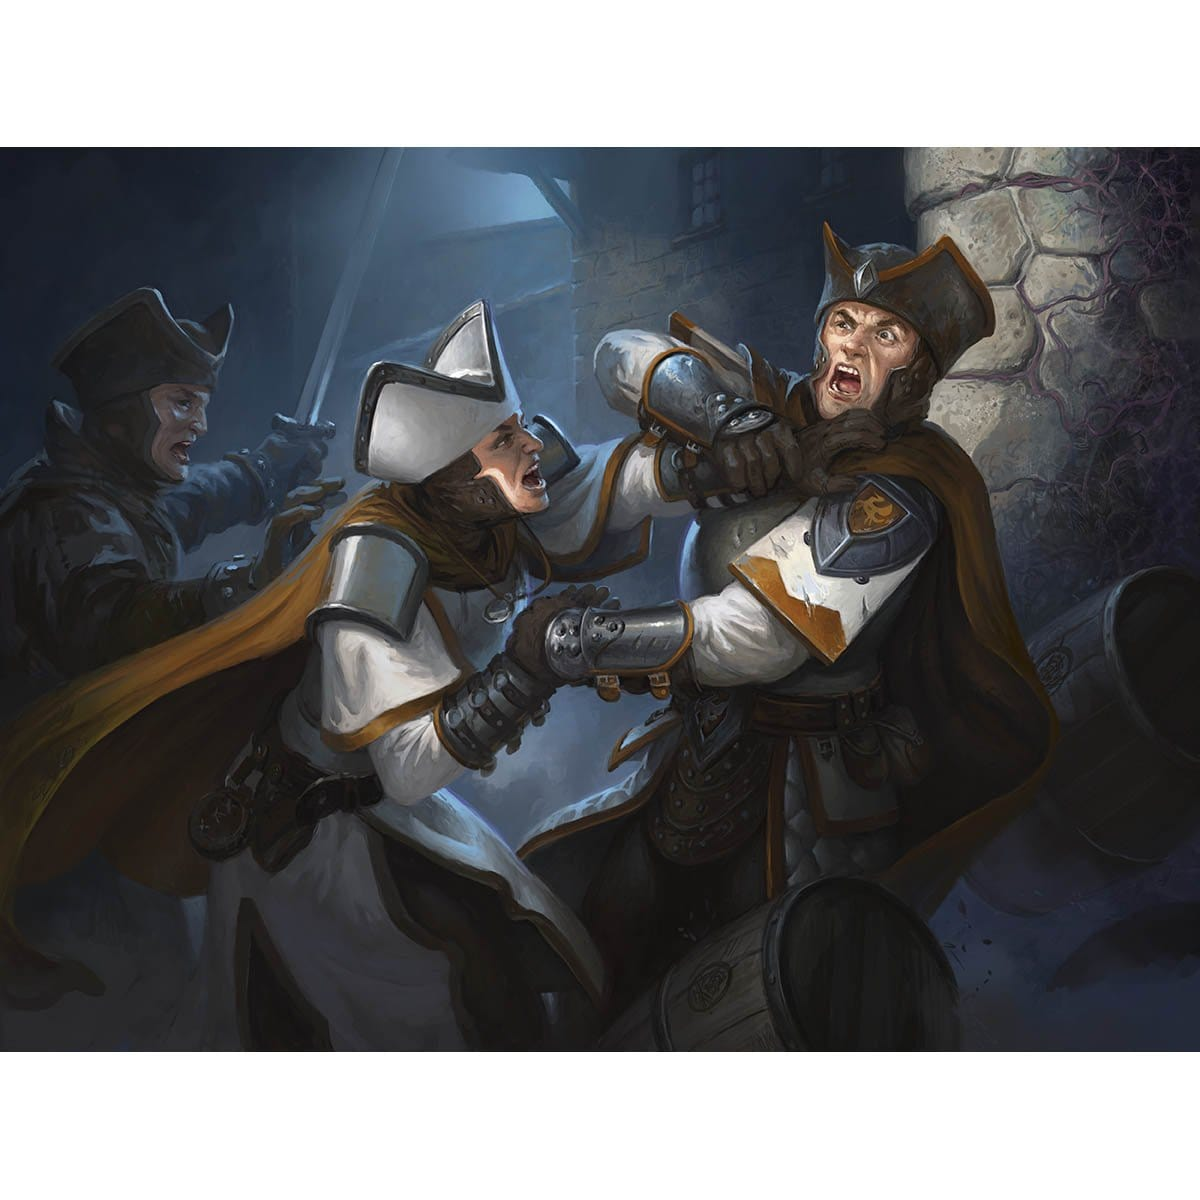 Dissension in the Ranks Print - Print - Original Magic Art - Accessories for Magic the Gathering and other card games